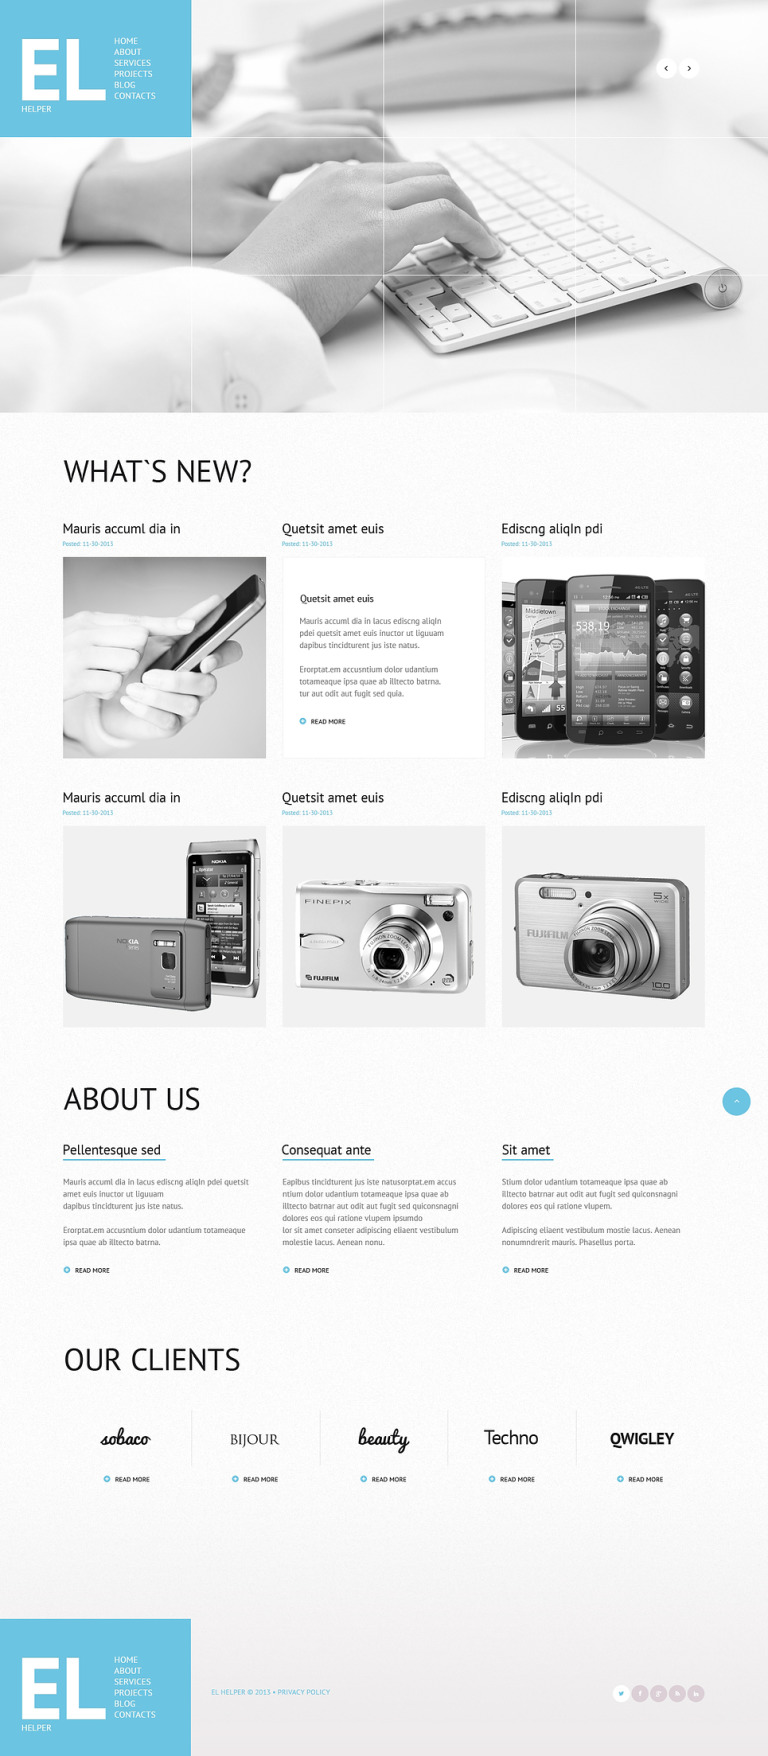 Mobile Repair Service Responsive WordPress Theme New Screenshots BIG